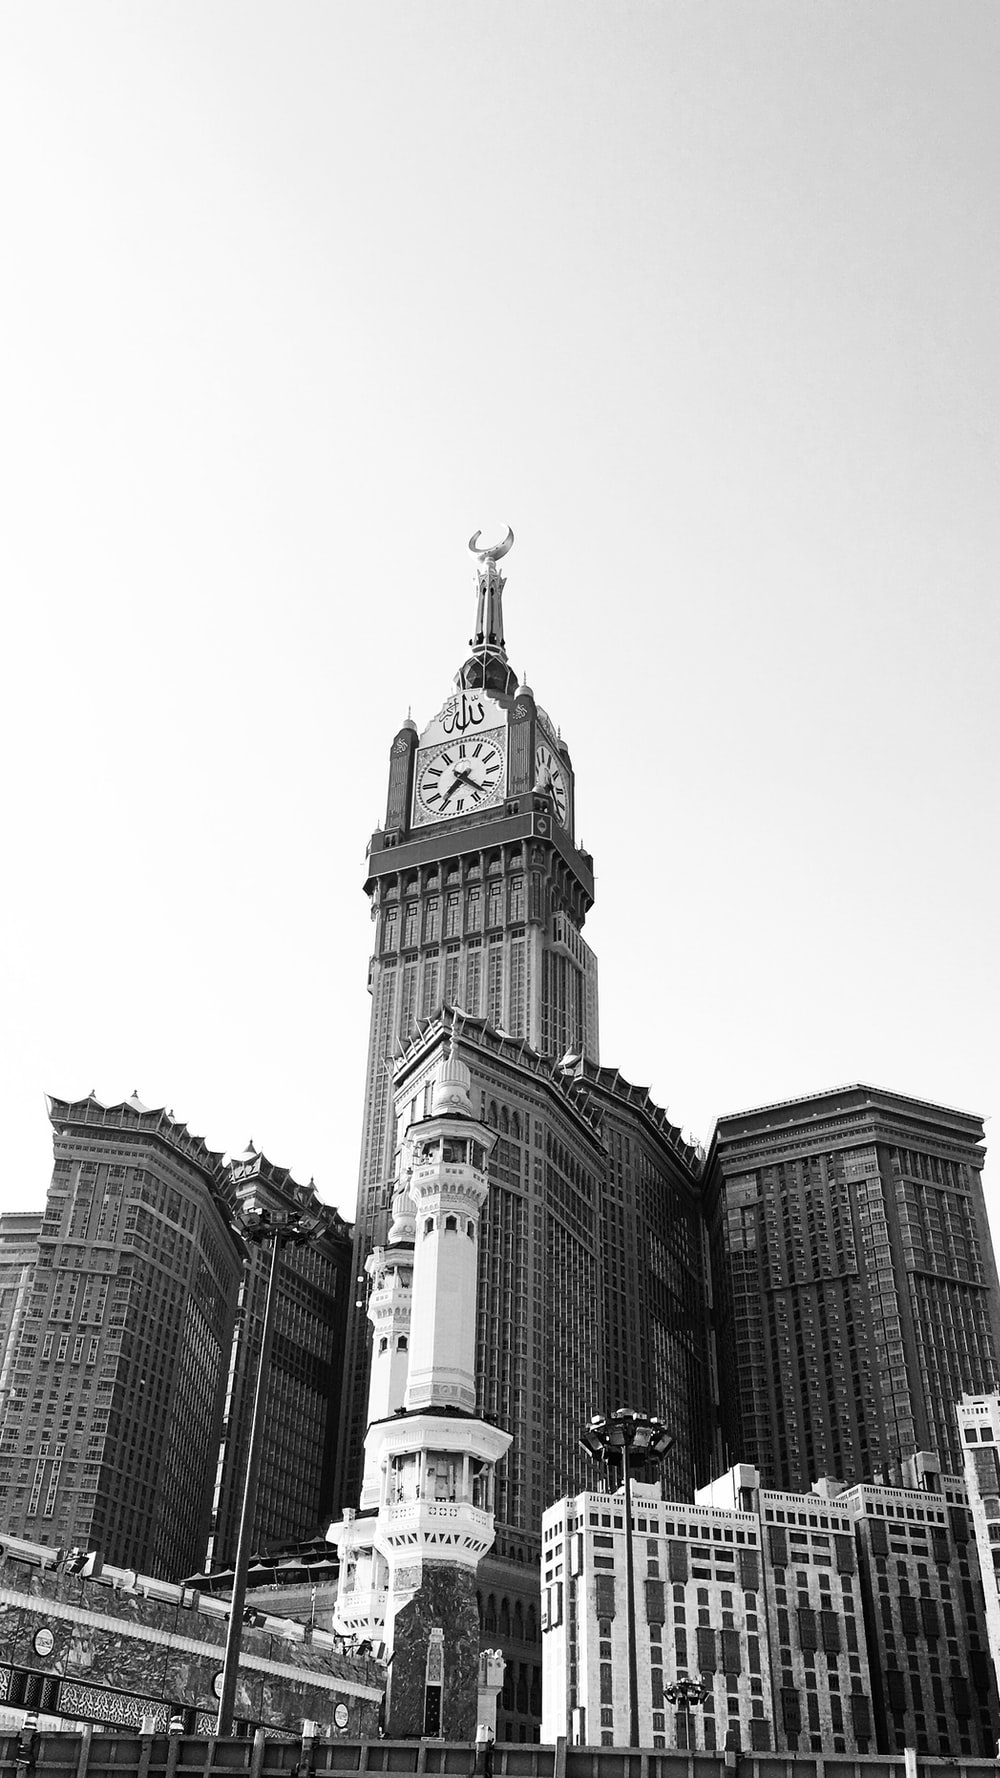 grayscale photo of buildings and a tower